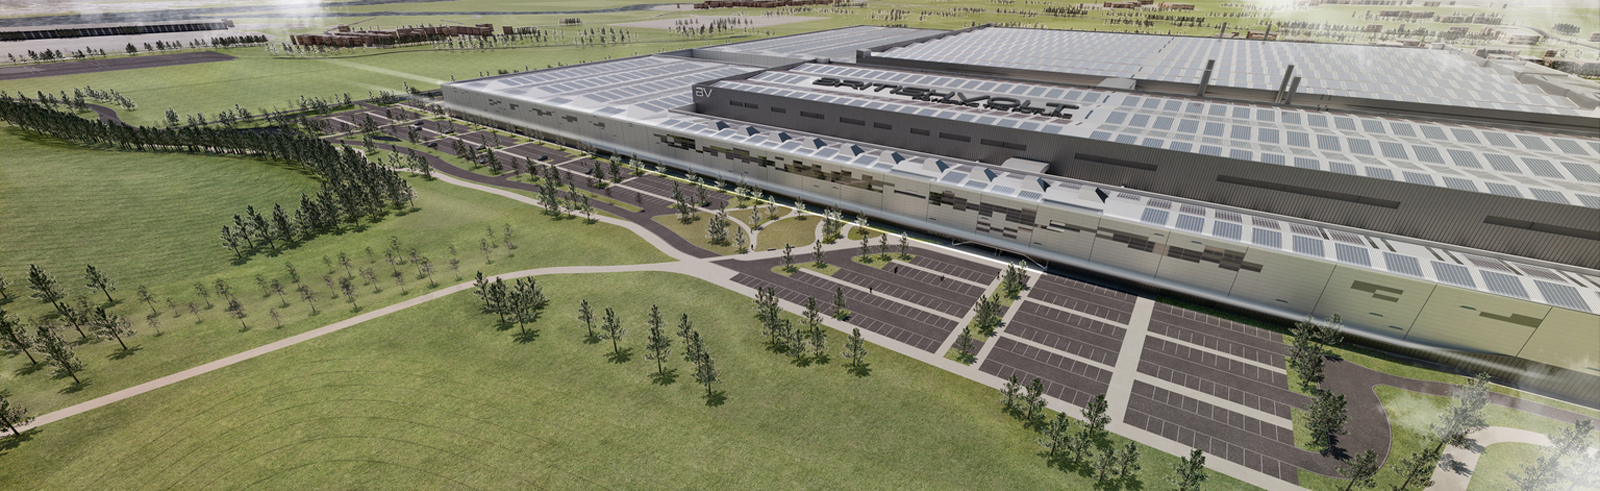 Britishvolt has received planning permission for its first full-scale lithium-ion Gigaplant facility